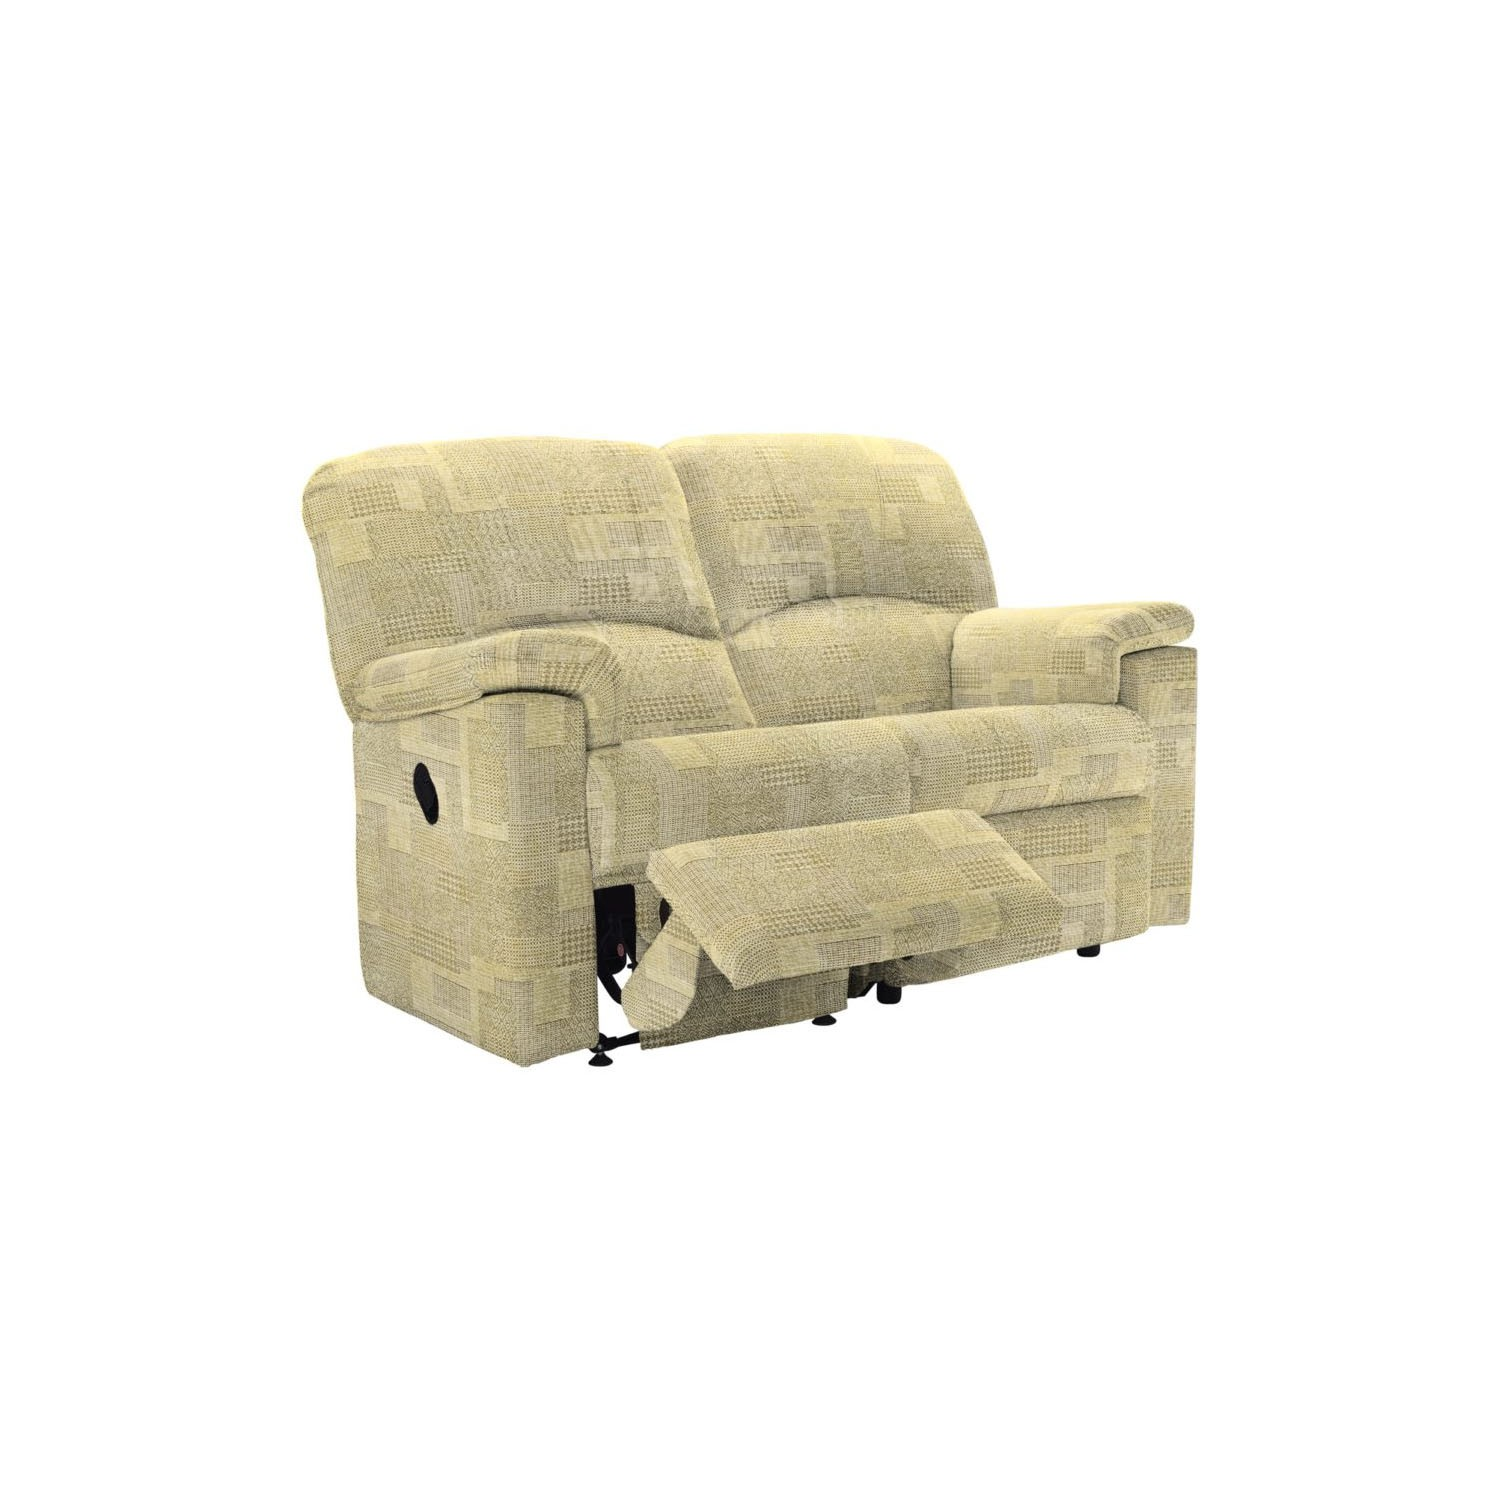 G Plan Chloe Two Seater Left Recliner Sofa - Lydia 2 Seater Sofa